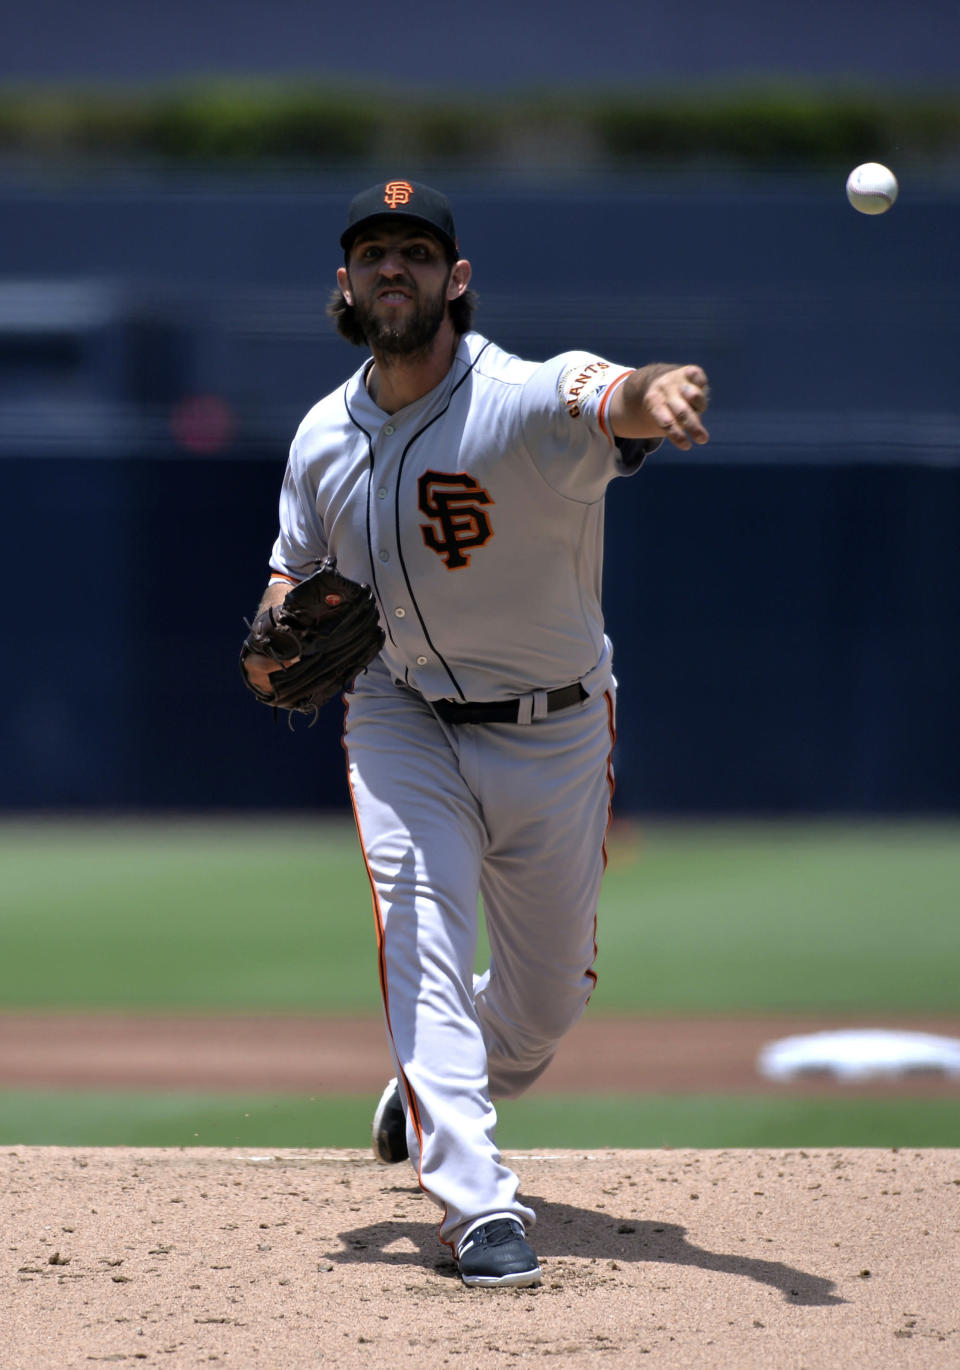 San Francisco Giants starting pitcher Madison Bumgarner works against a San Diego Padres batter during the first inning of a baseball game Sunday, July 28, 2019, in San Diego. (AP Photo/Orlando Ramirez)